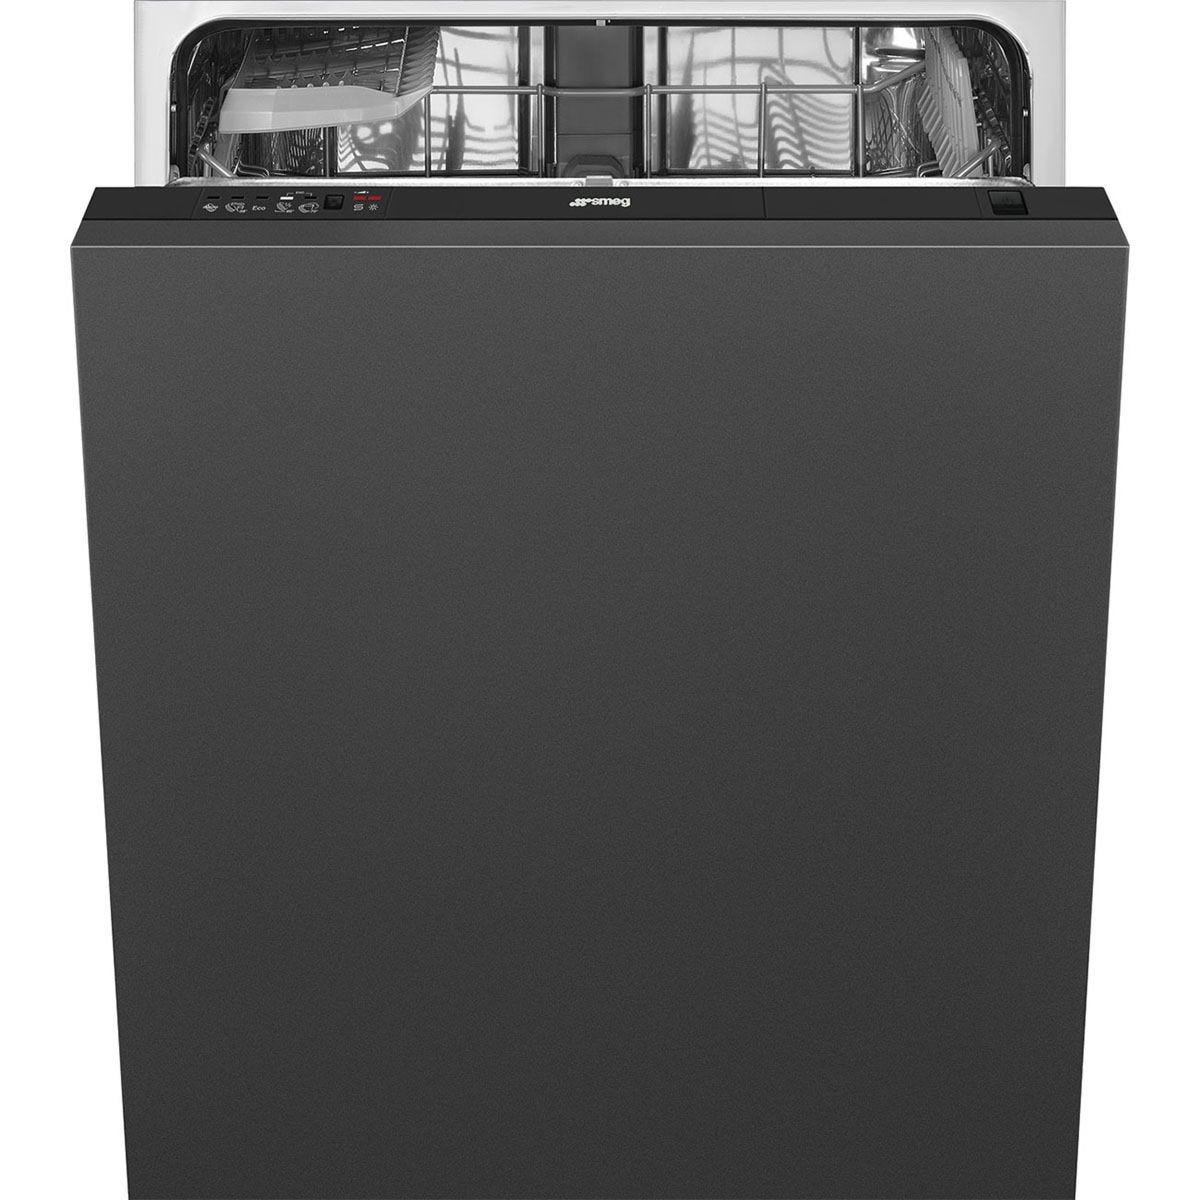 SMEG DI612E1 60cm 12-Place Setting A+ Rated Fully Integrated StandardDishwasher - BlackControl Panel with Fixed Door Fixing Kit